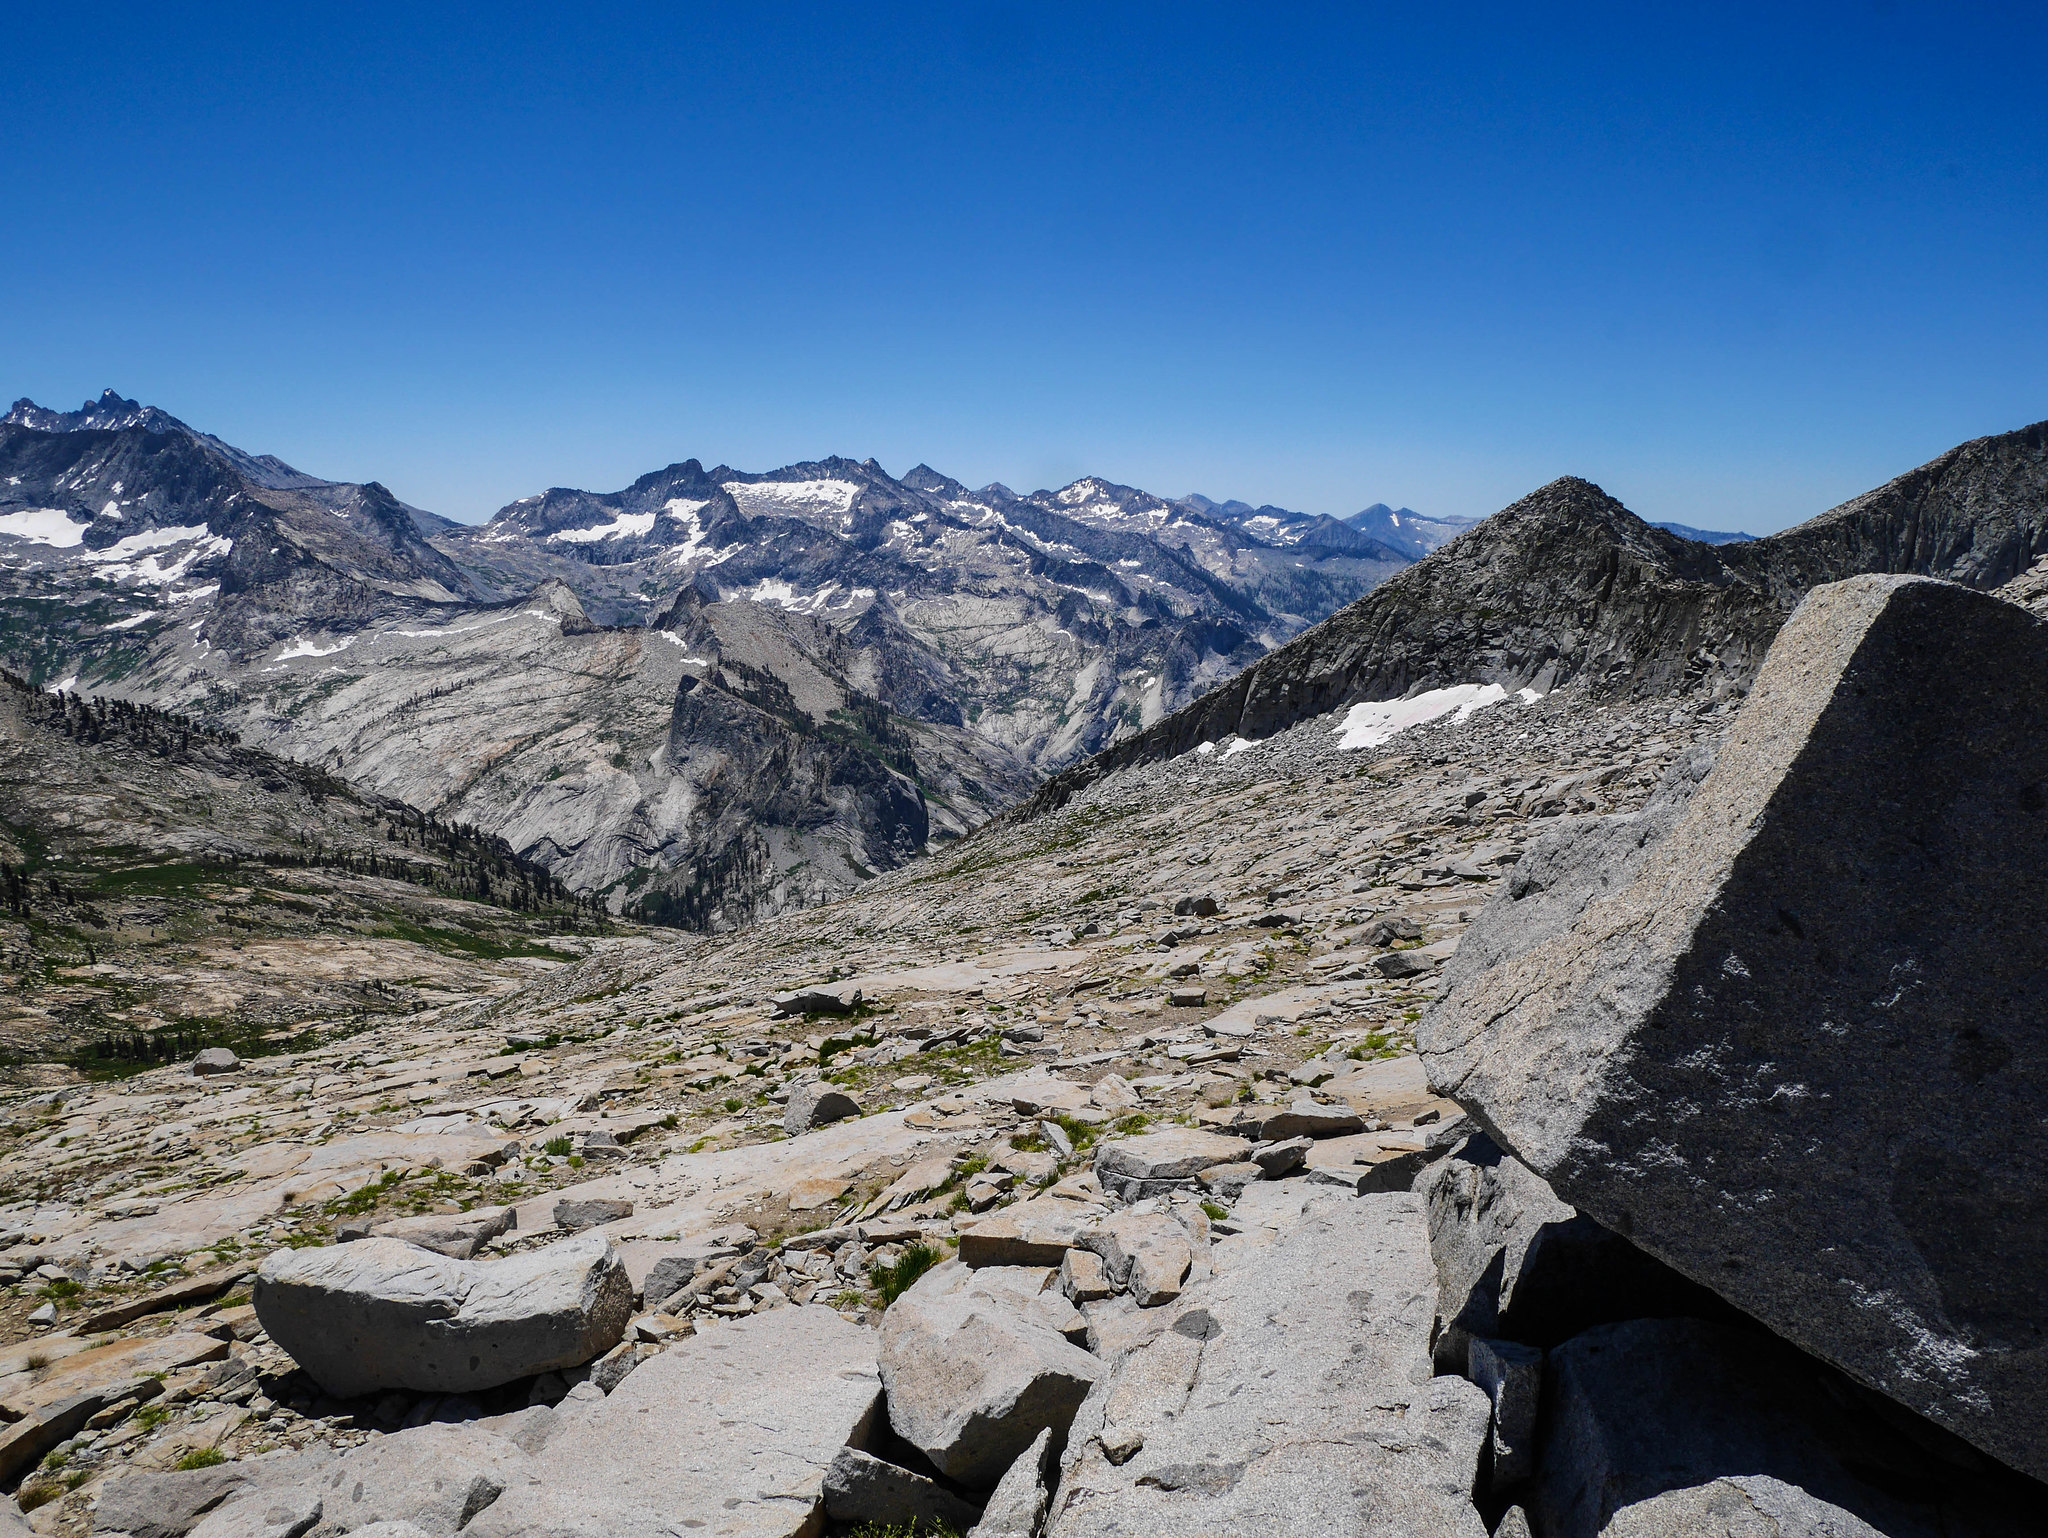 Looking south from Ptetrodactyl Pass